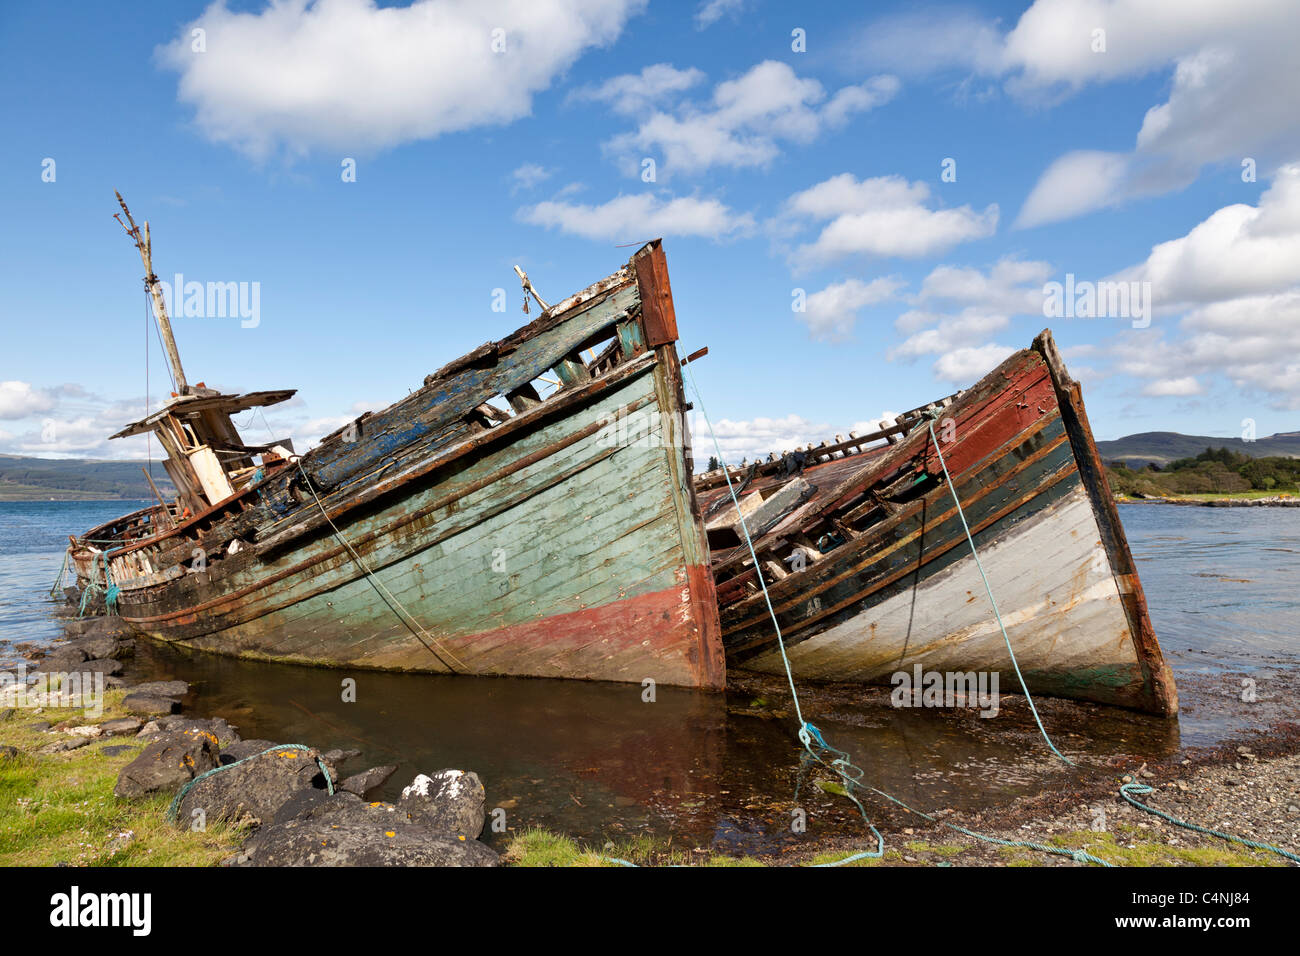 Abandoned fishing boats, Salen Aros, Mull, Scotland - Stock Image